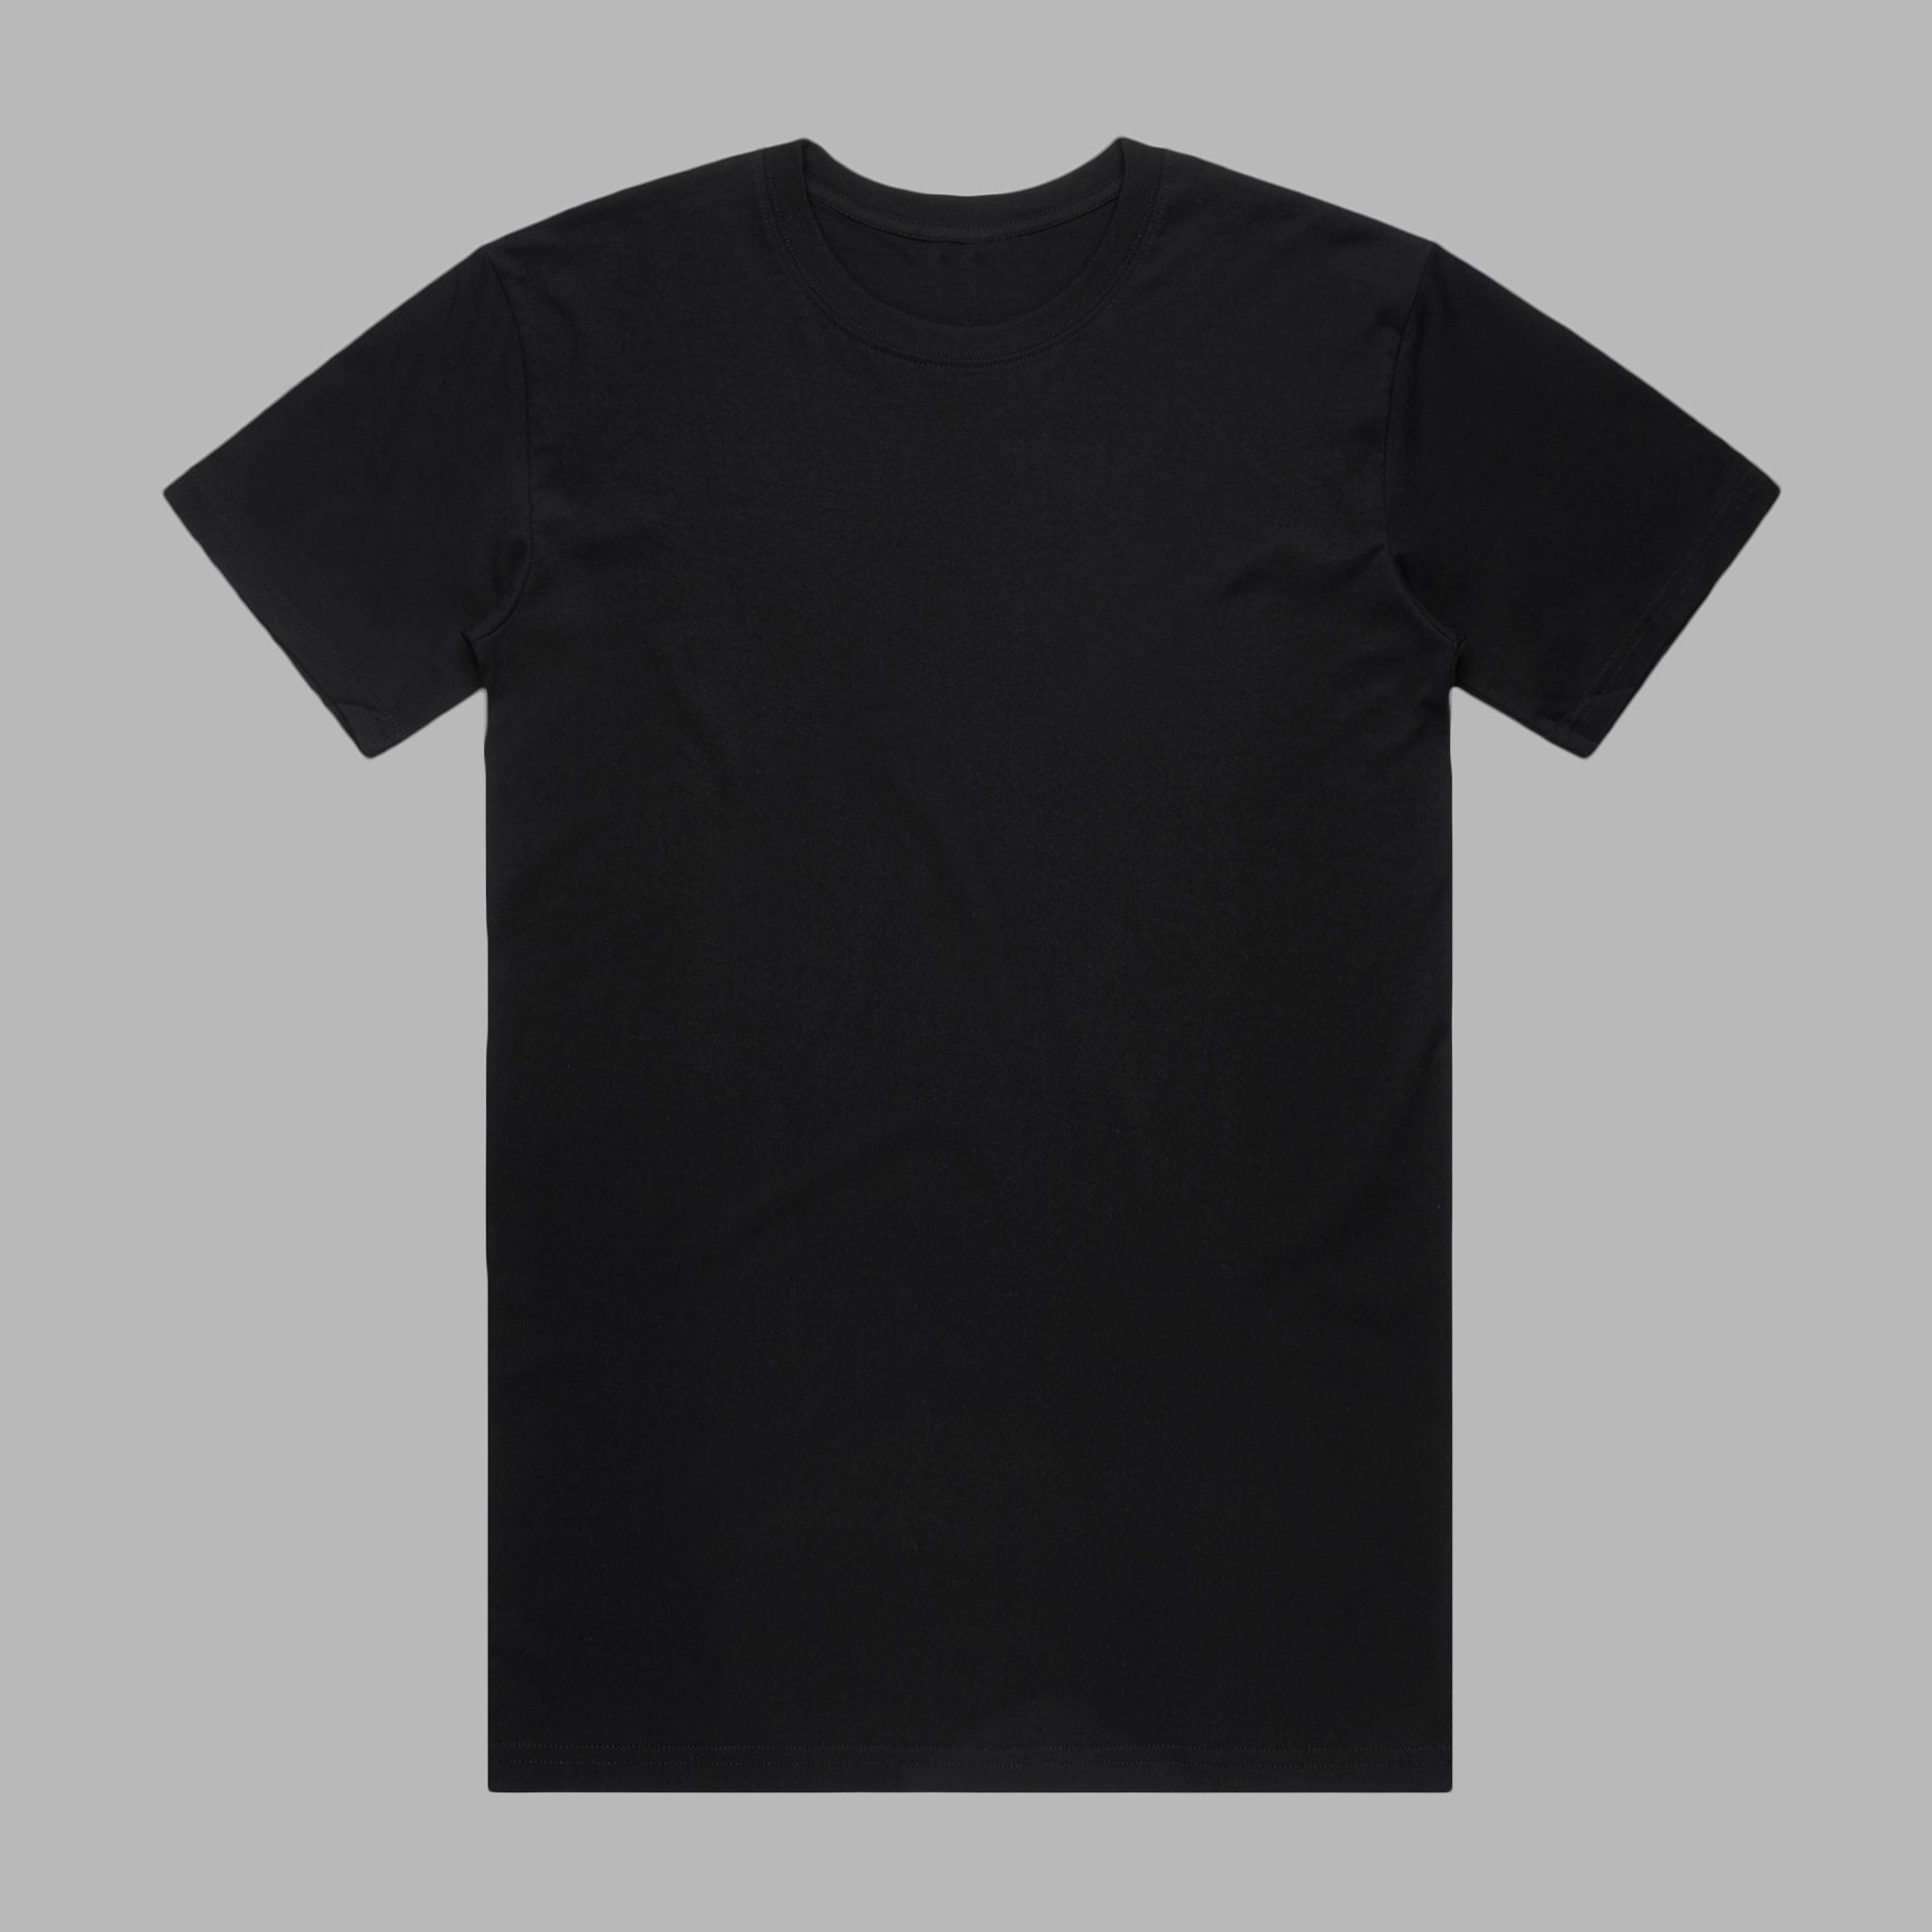 Premium Organic Cotton T-Shirt - Black